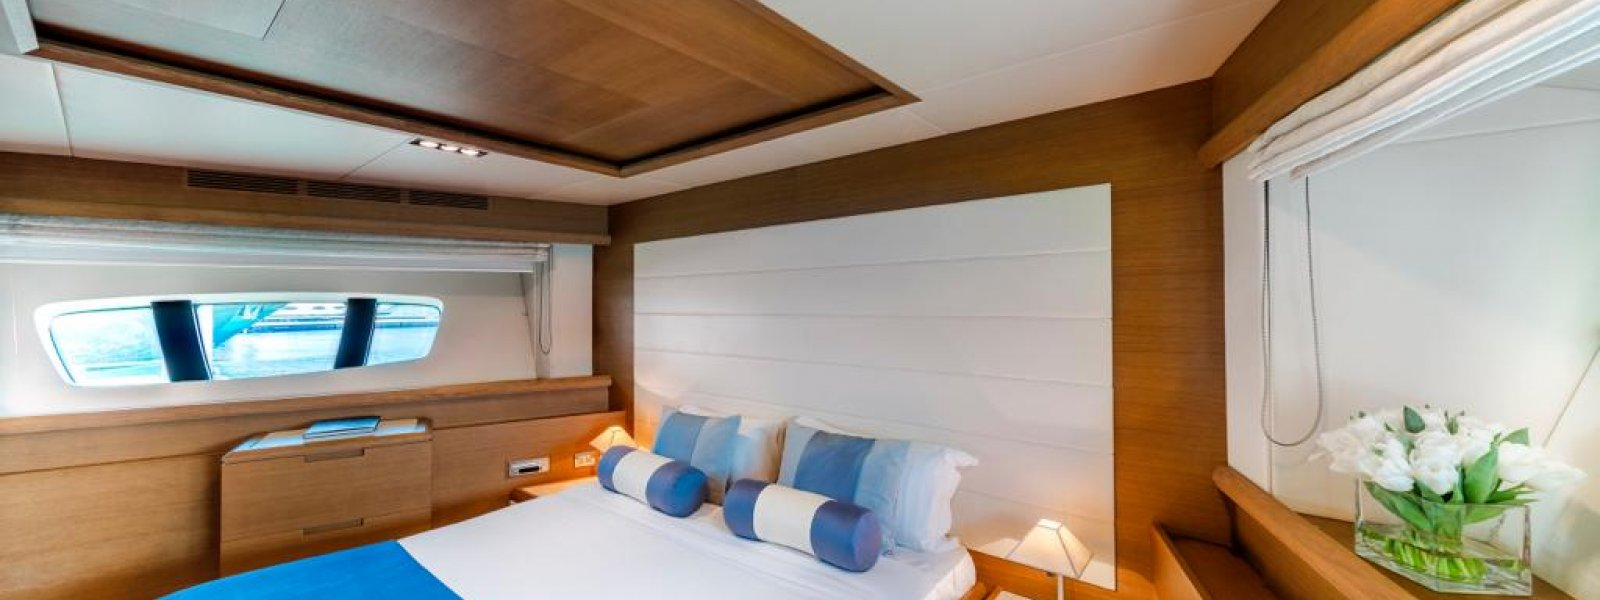 Azimut Yacht Bedroom